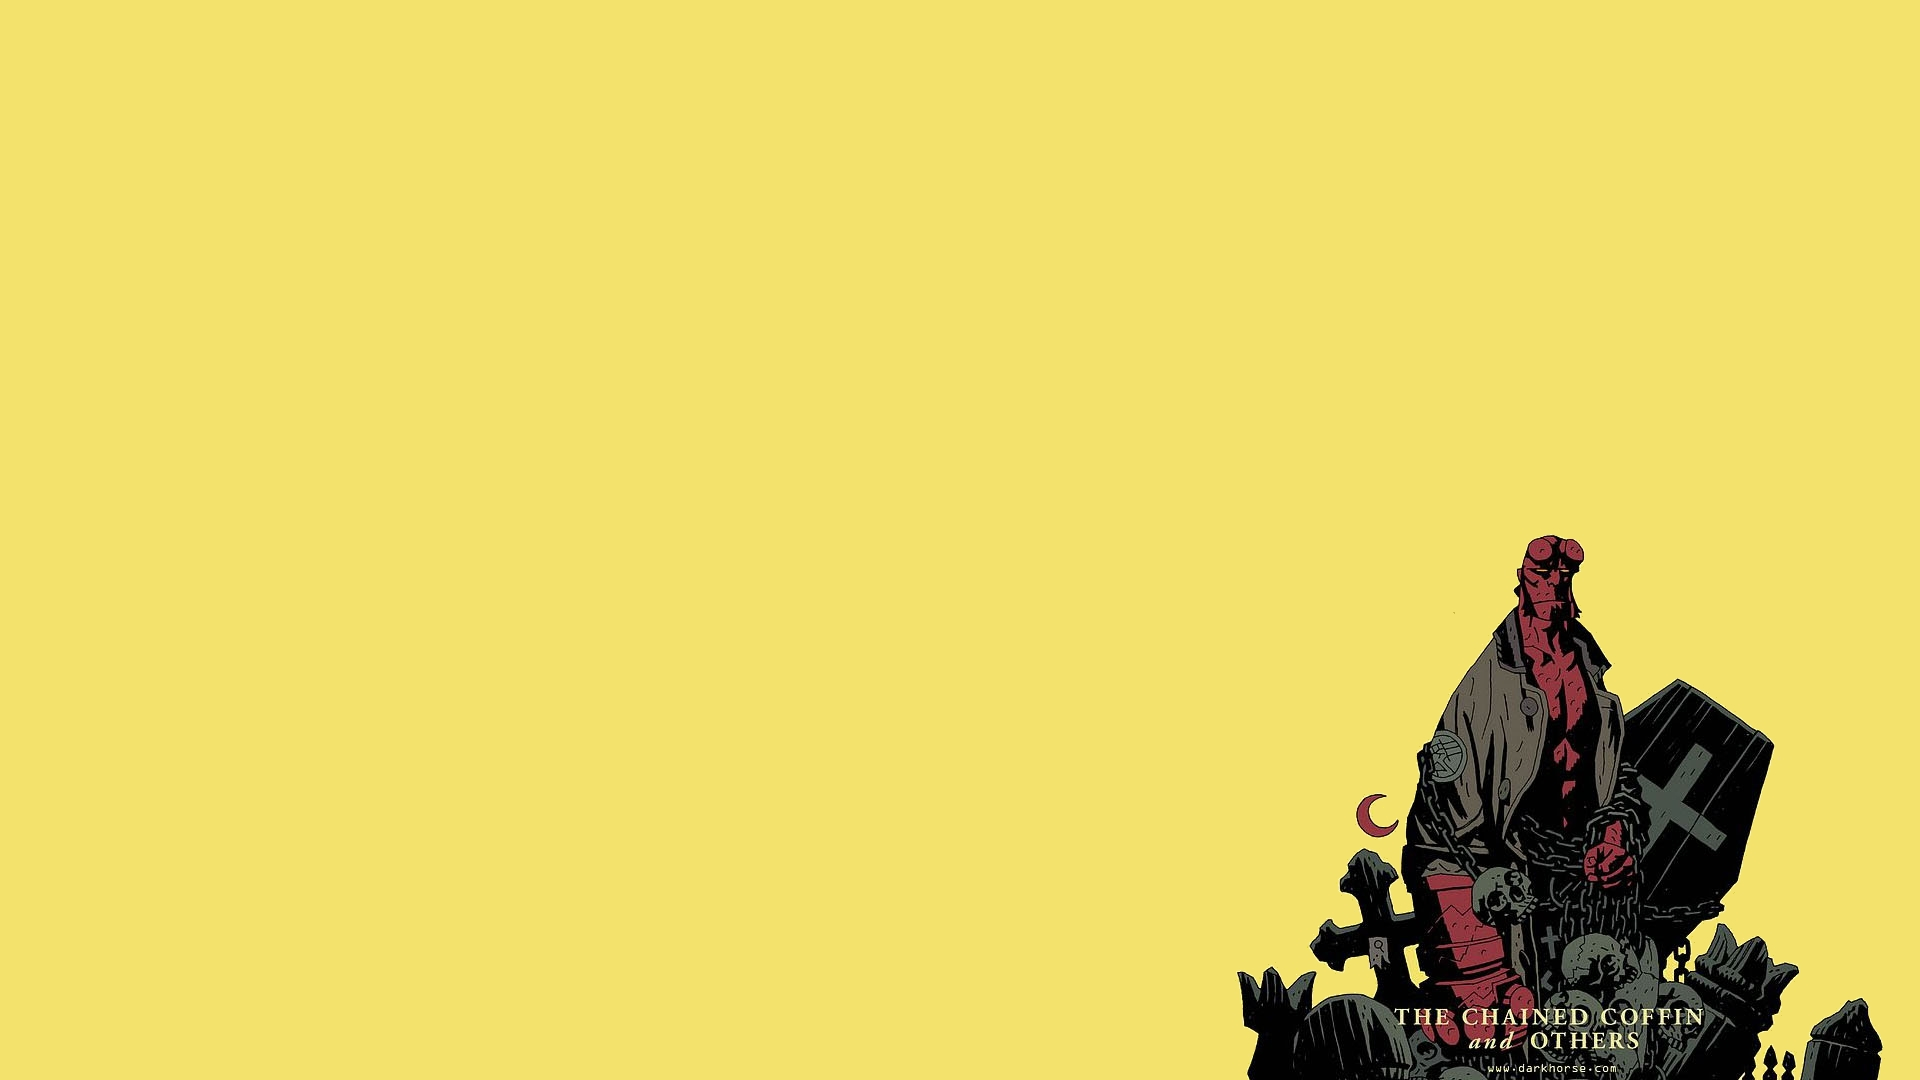 1920x1080 Hd Wallpaper Background Image: Hellboy HD Wallpaper